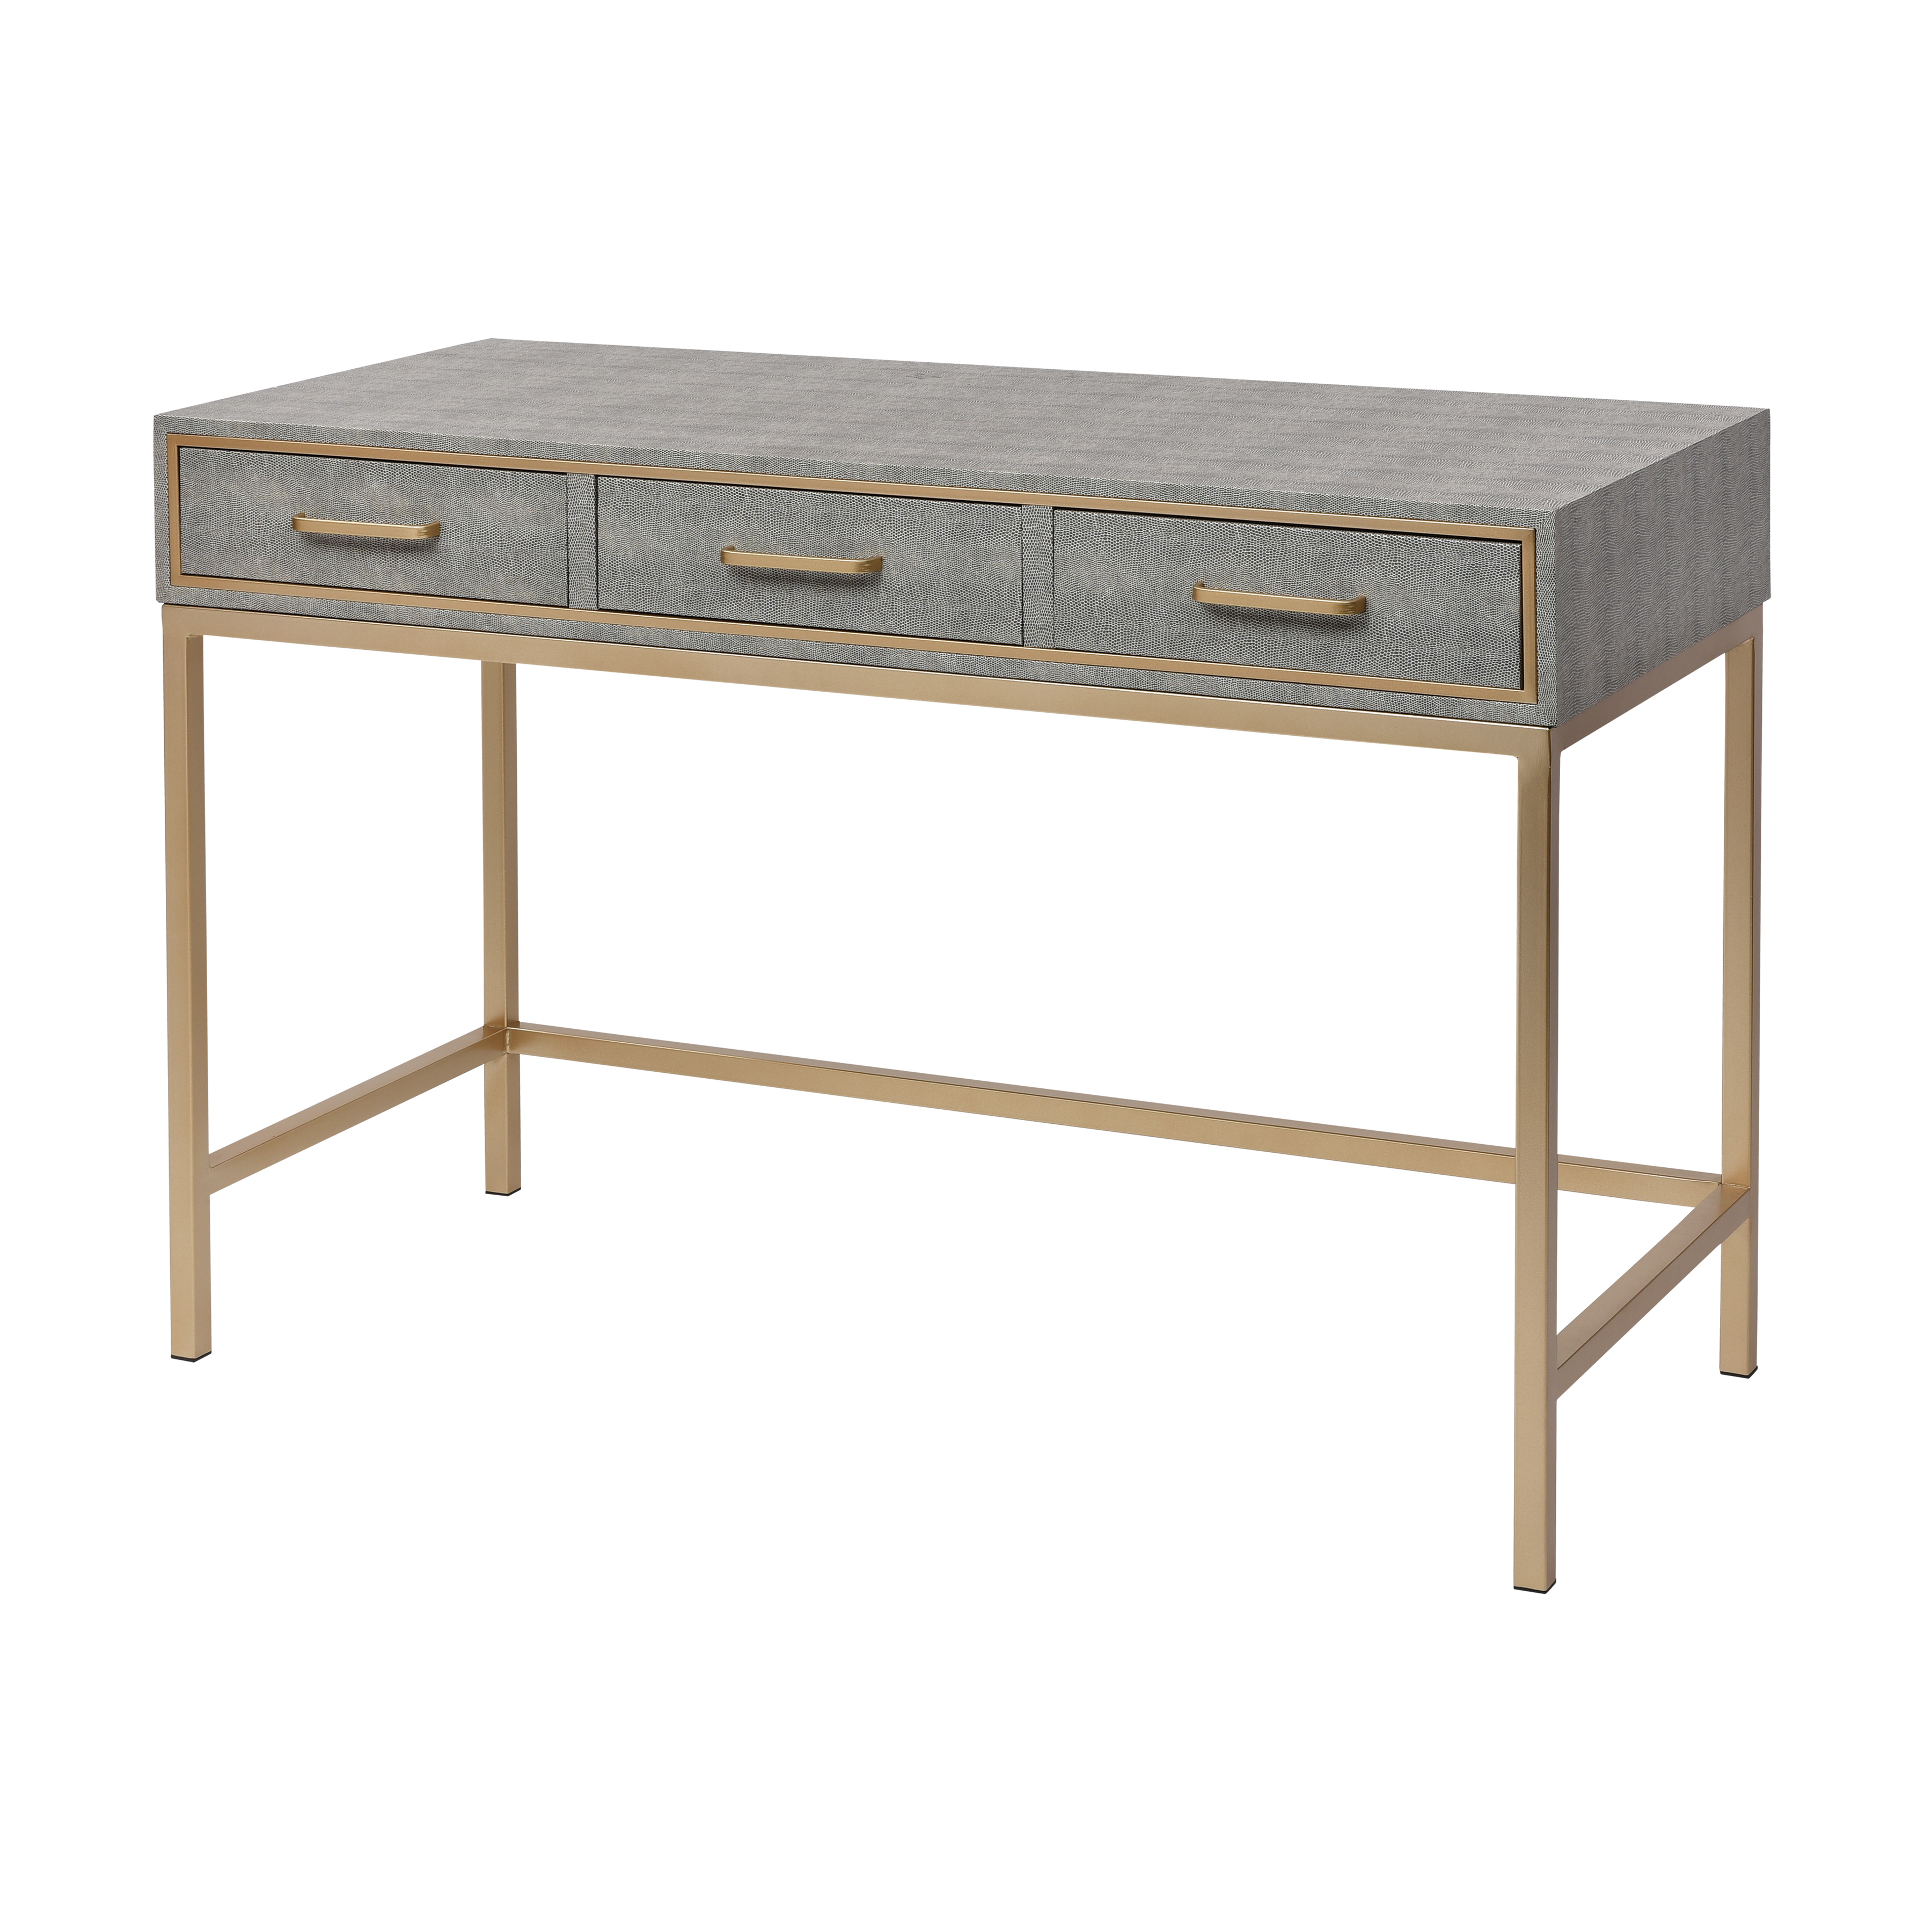 Sands Point 3-Drawer Desk in Grey and Gold | Elk Home